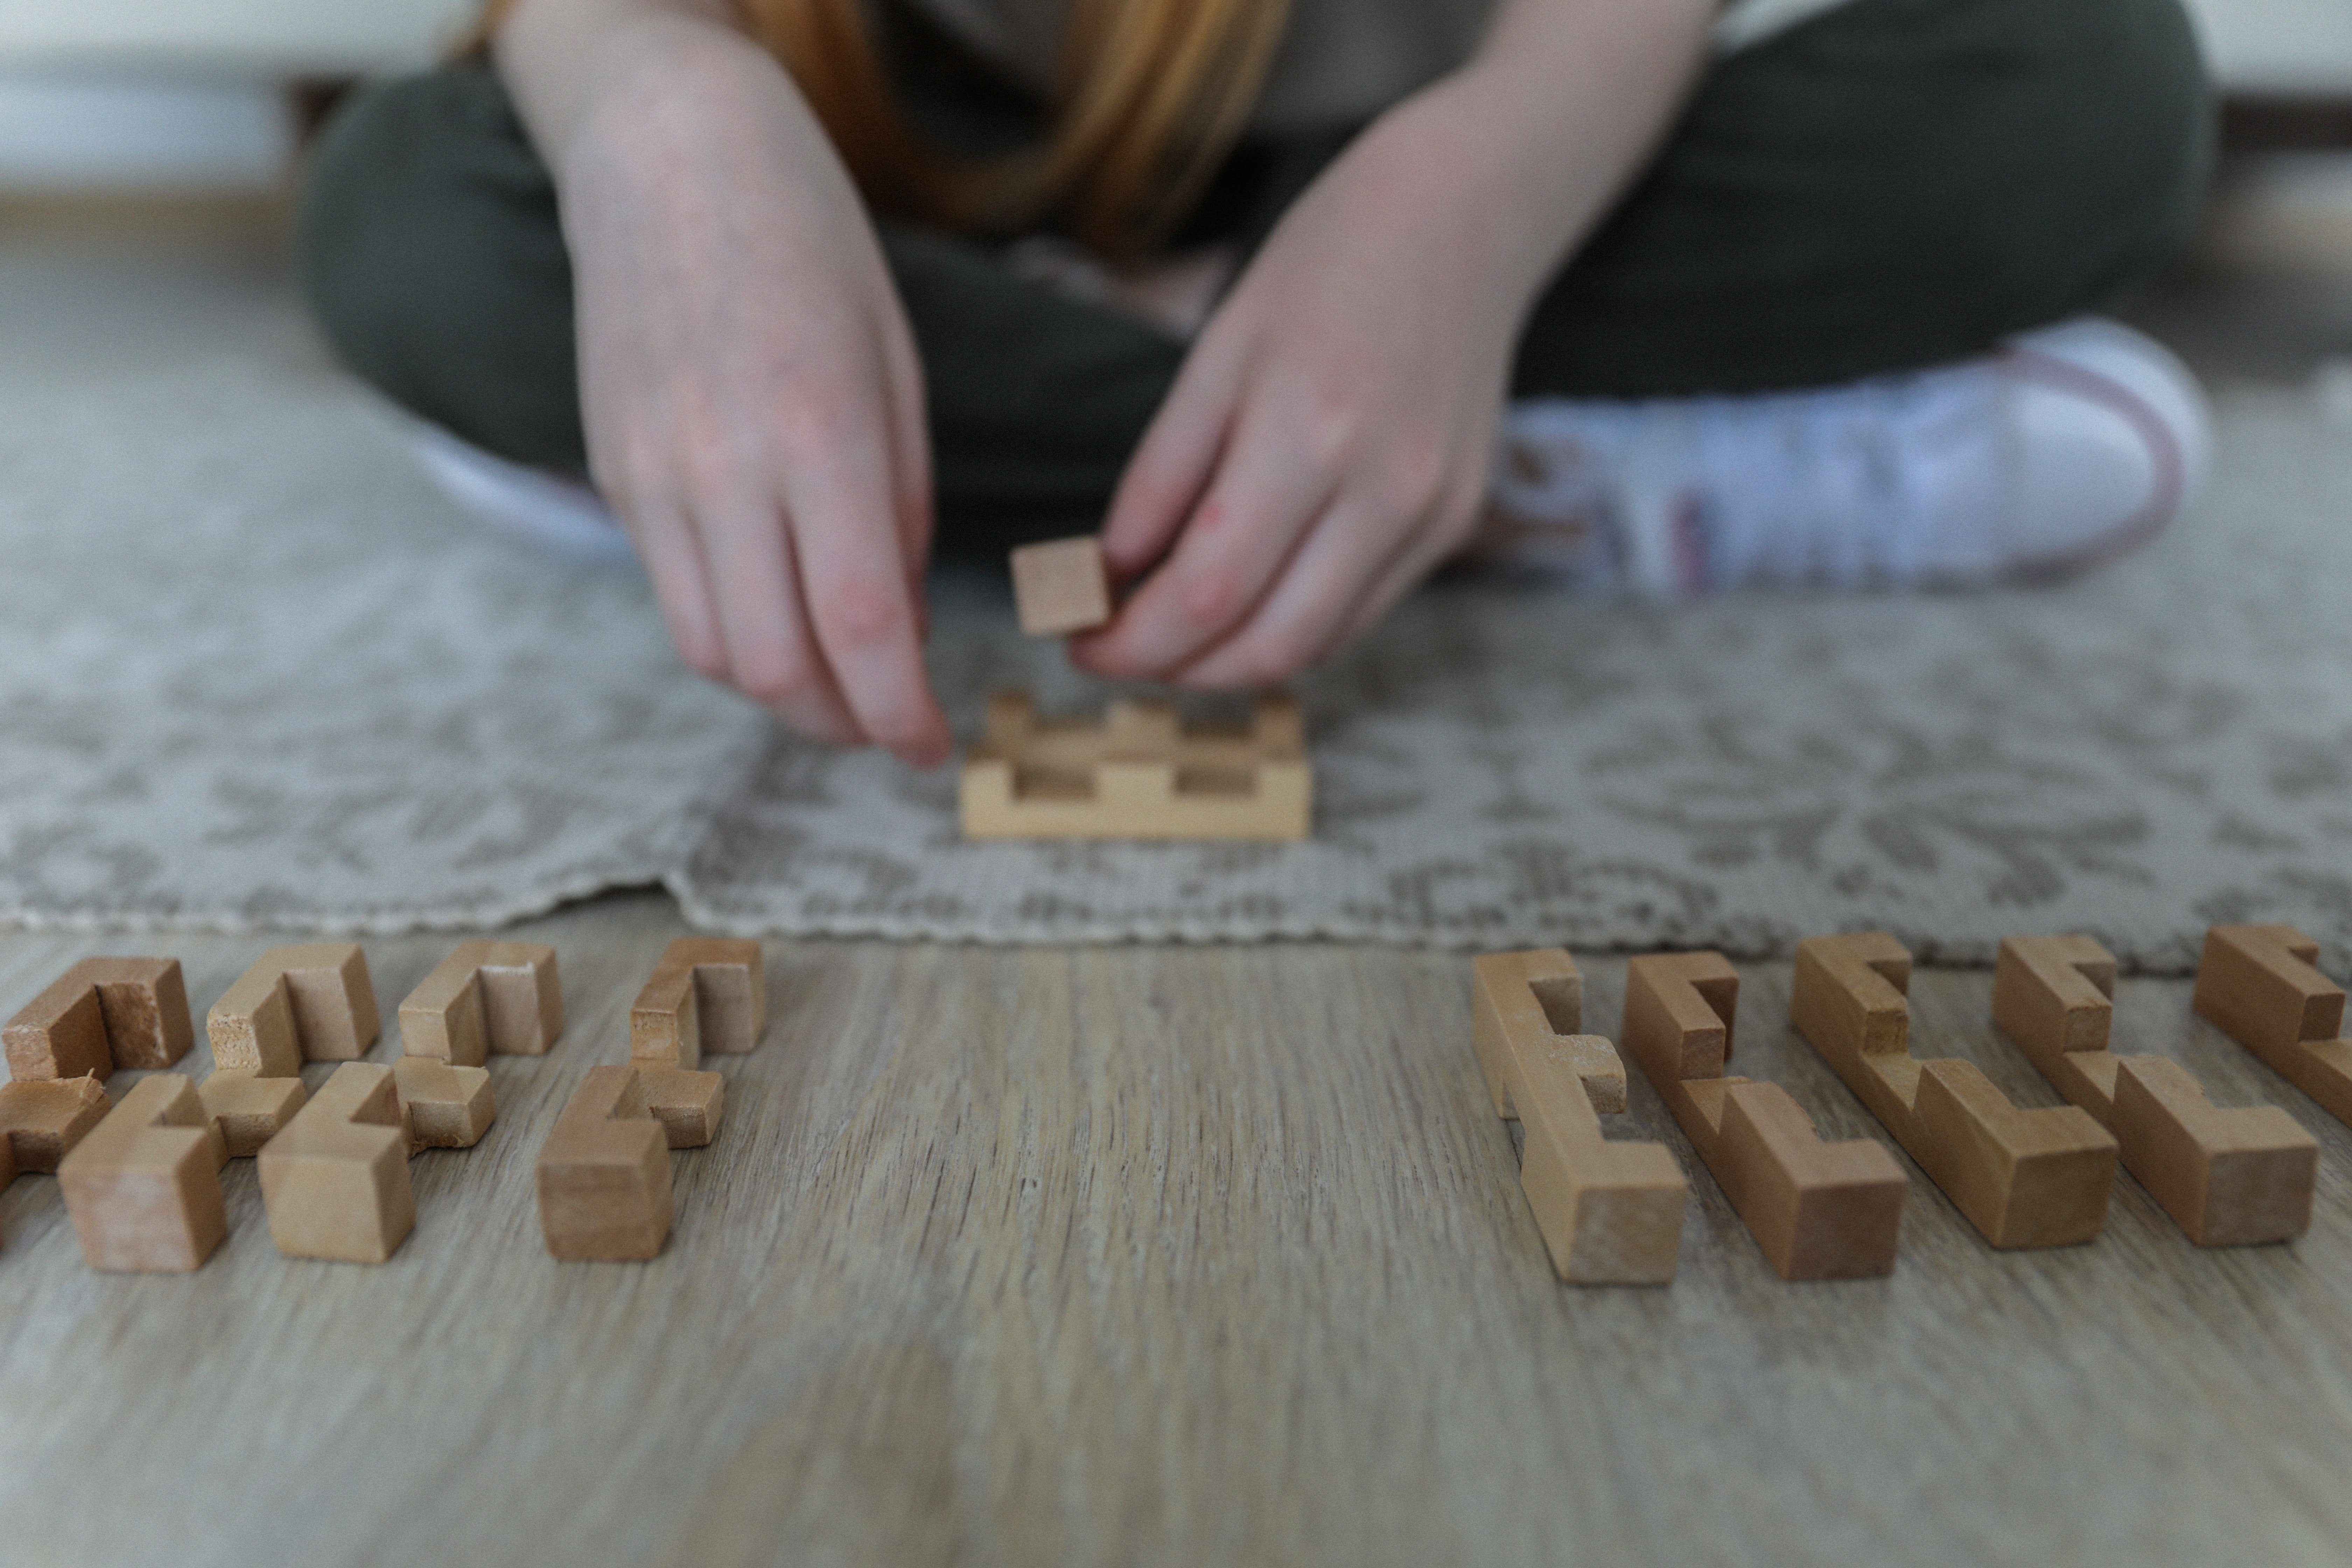 A girl attempts to make sense of wooden puzzle blocks laid out in front of her   Photo: Pexels/Monstera